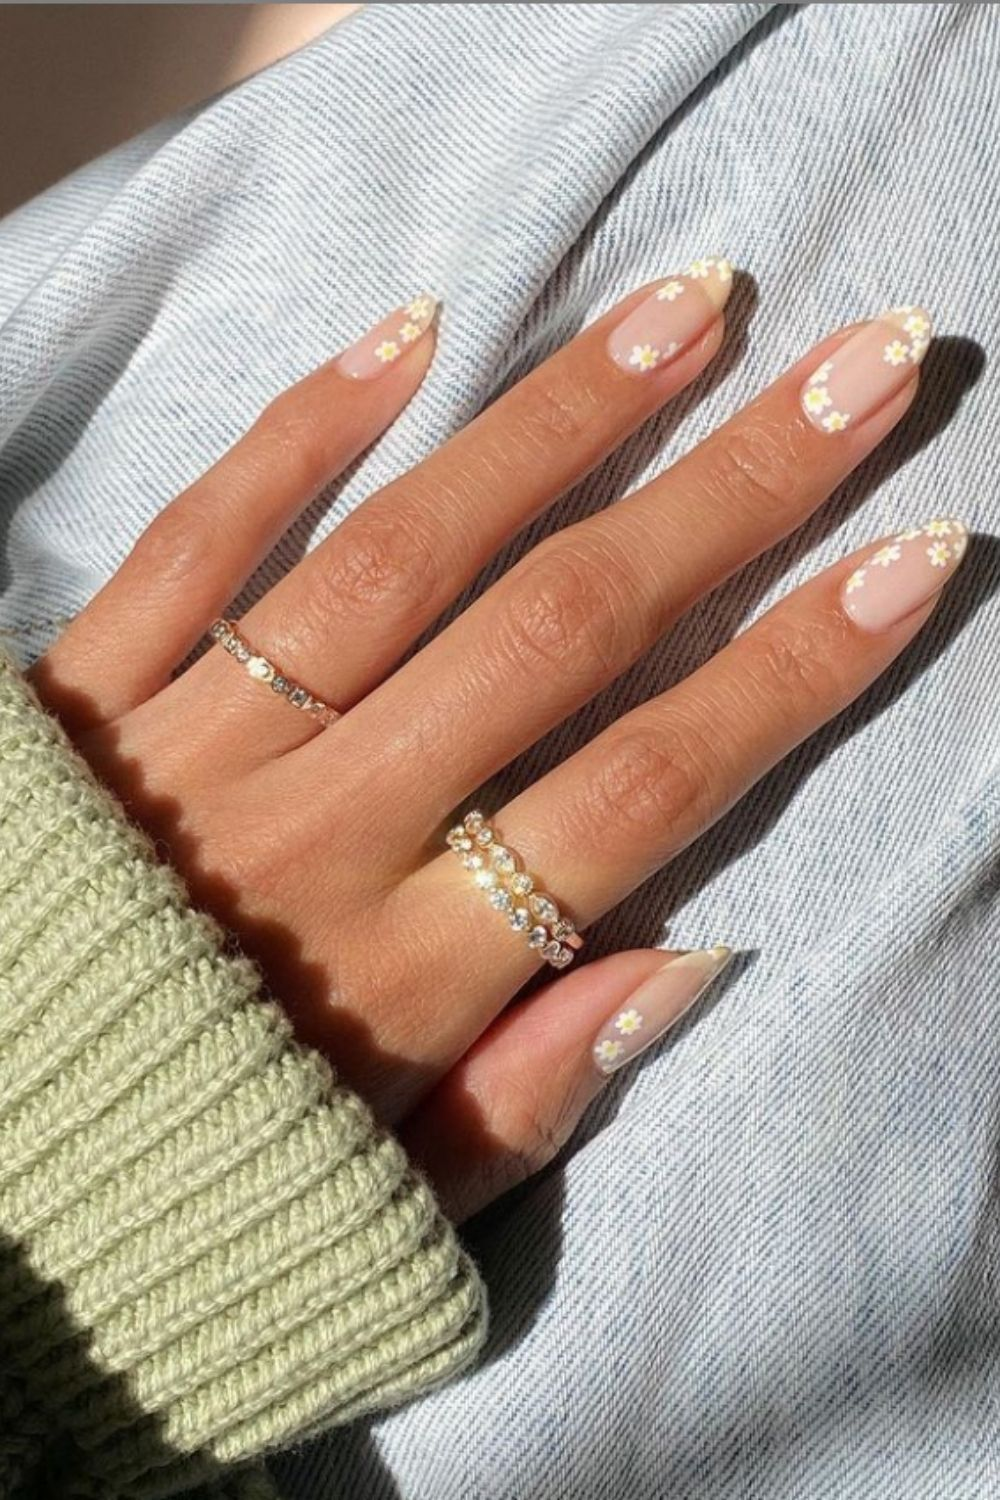 Natural Almond Nails For Your Must-Try List In 2021!